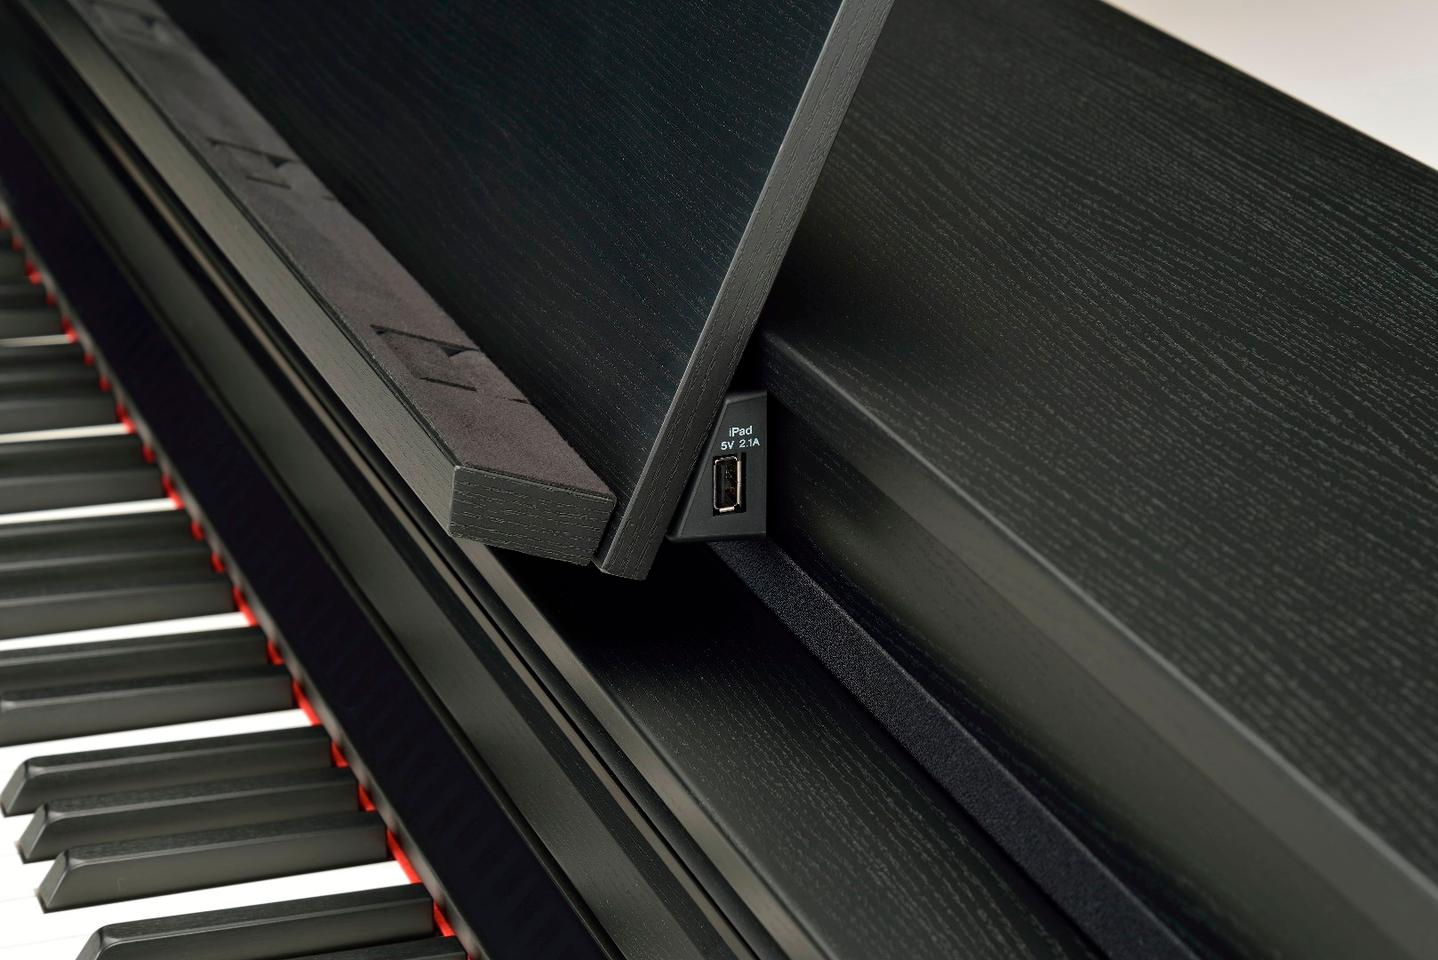 The iPad running the Smart Pianist app is cabled to the Clavinova CSP piano using a port hidden behind the music stand